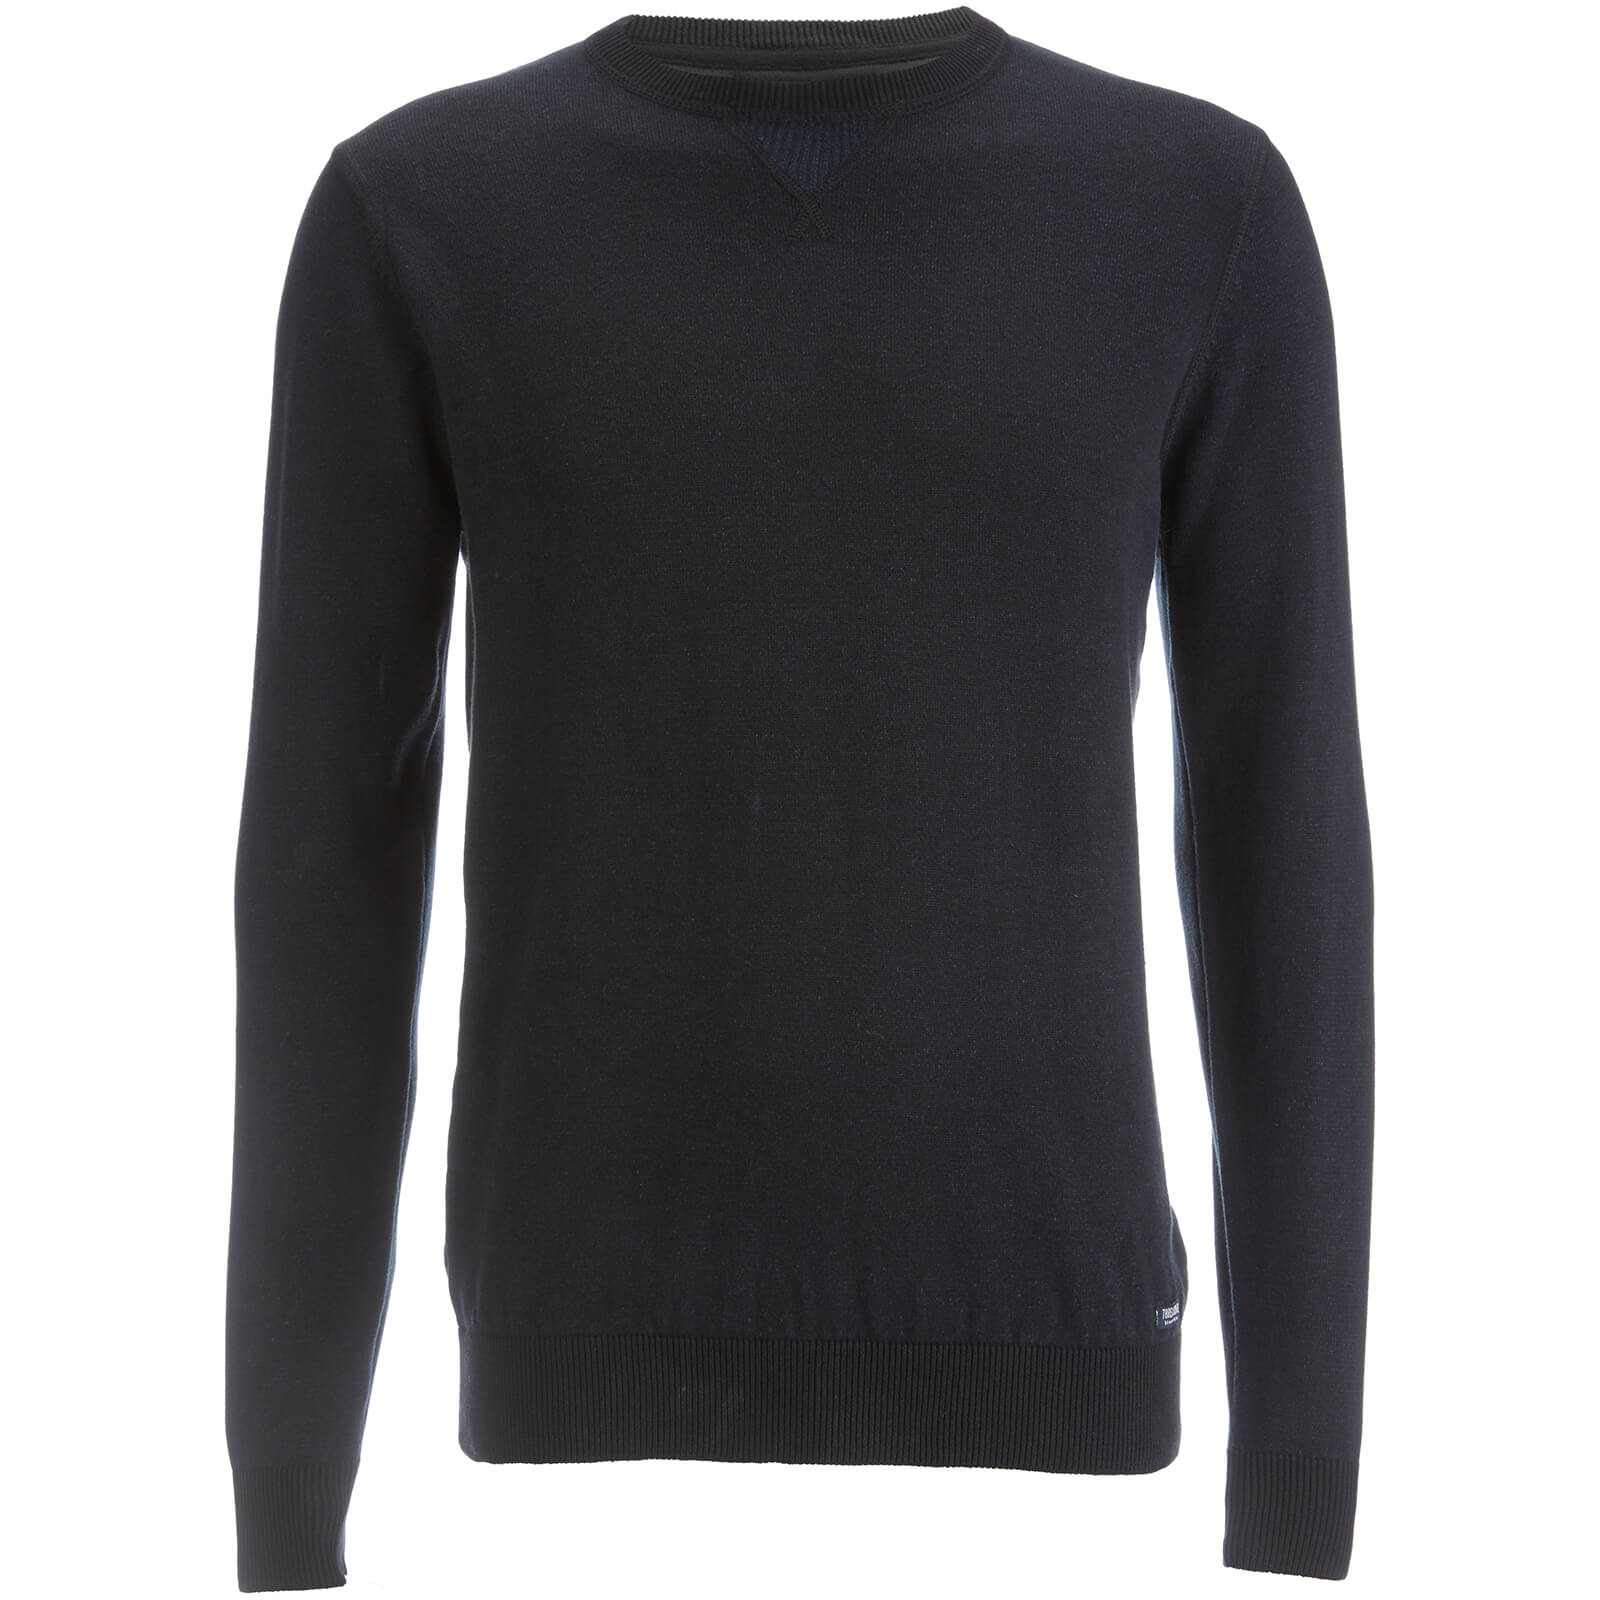 4a89516afd8430 Threadbare Men's Tommy Cotton Crew Neck Casual Jumper - Black Mens Clothing  | Zavvi Australia